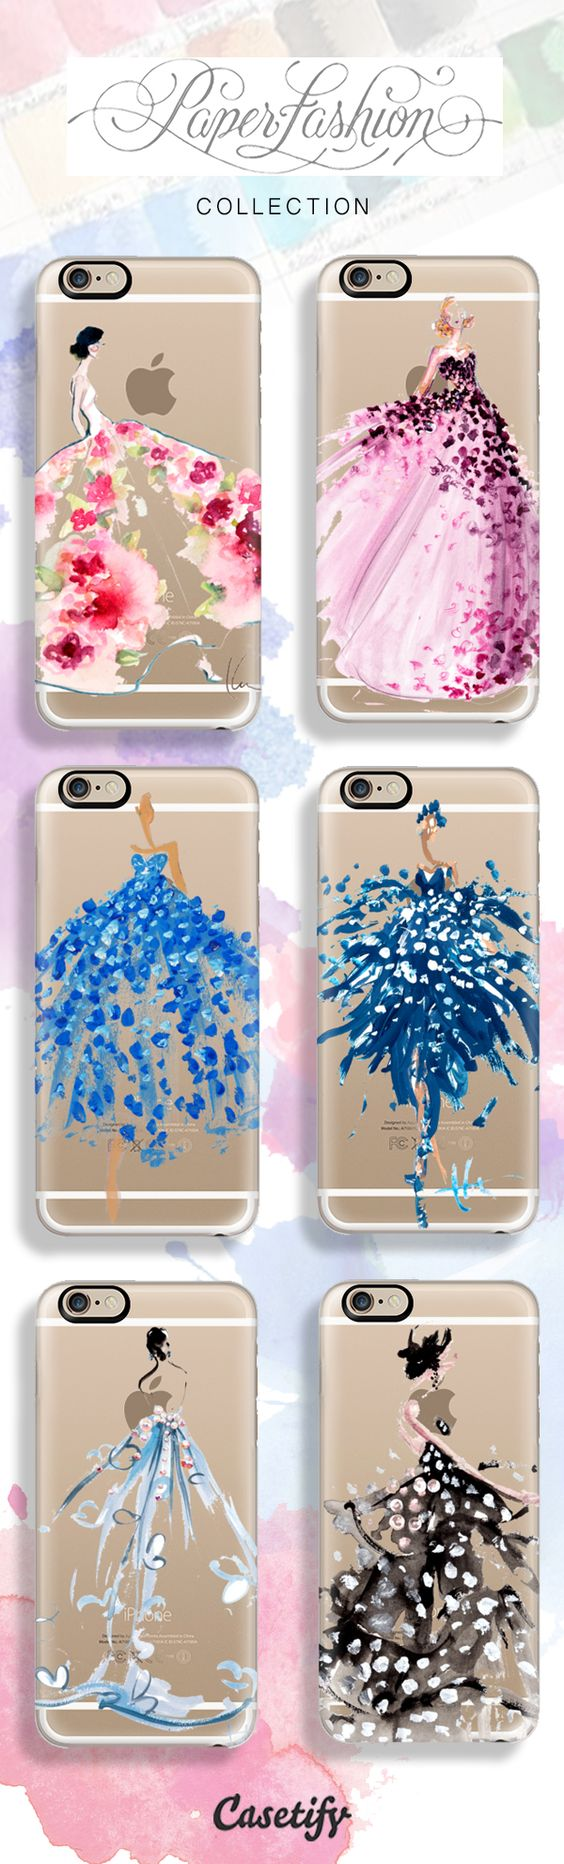 True Beauty. Shop @Katie Rodgers | Paper Fashion x @Casetify phone case collection here: